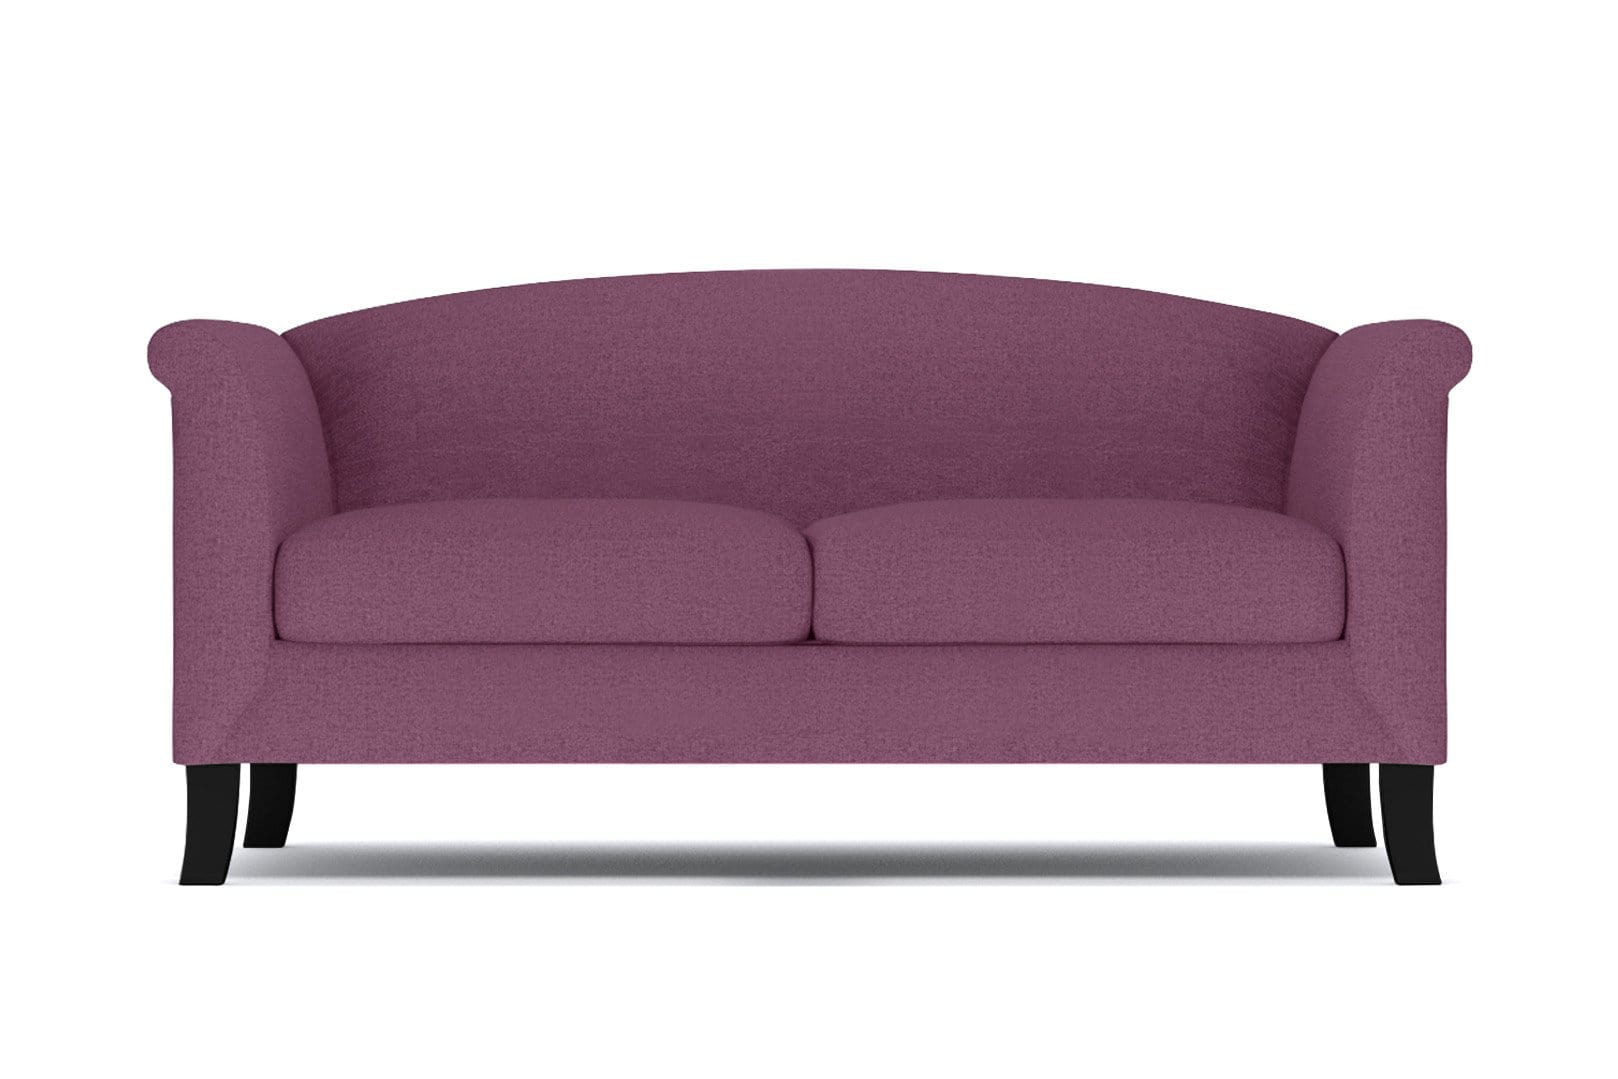 Albright_Loveseat__Purple___Small_Space_Modern_Couch_Made_in_the_USA__Sold_by_Apt2B